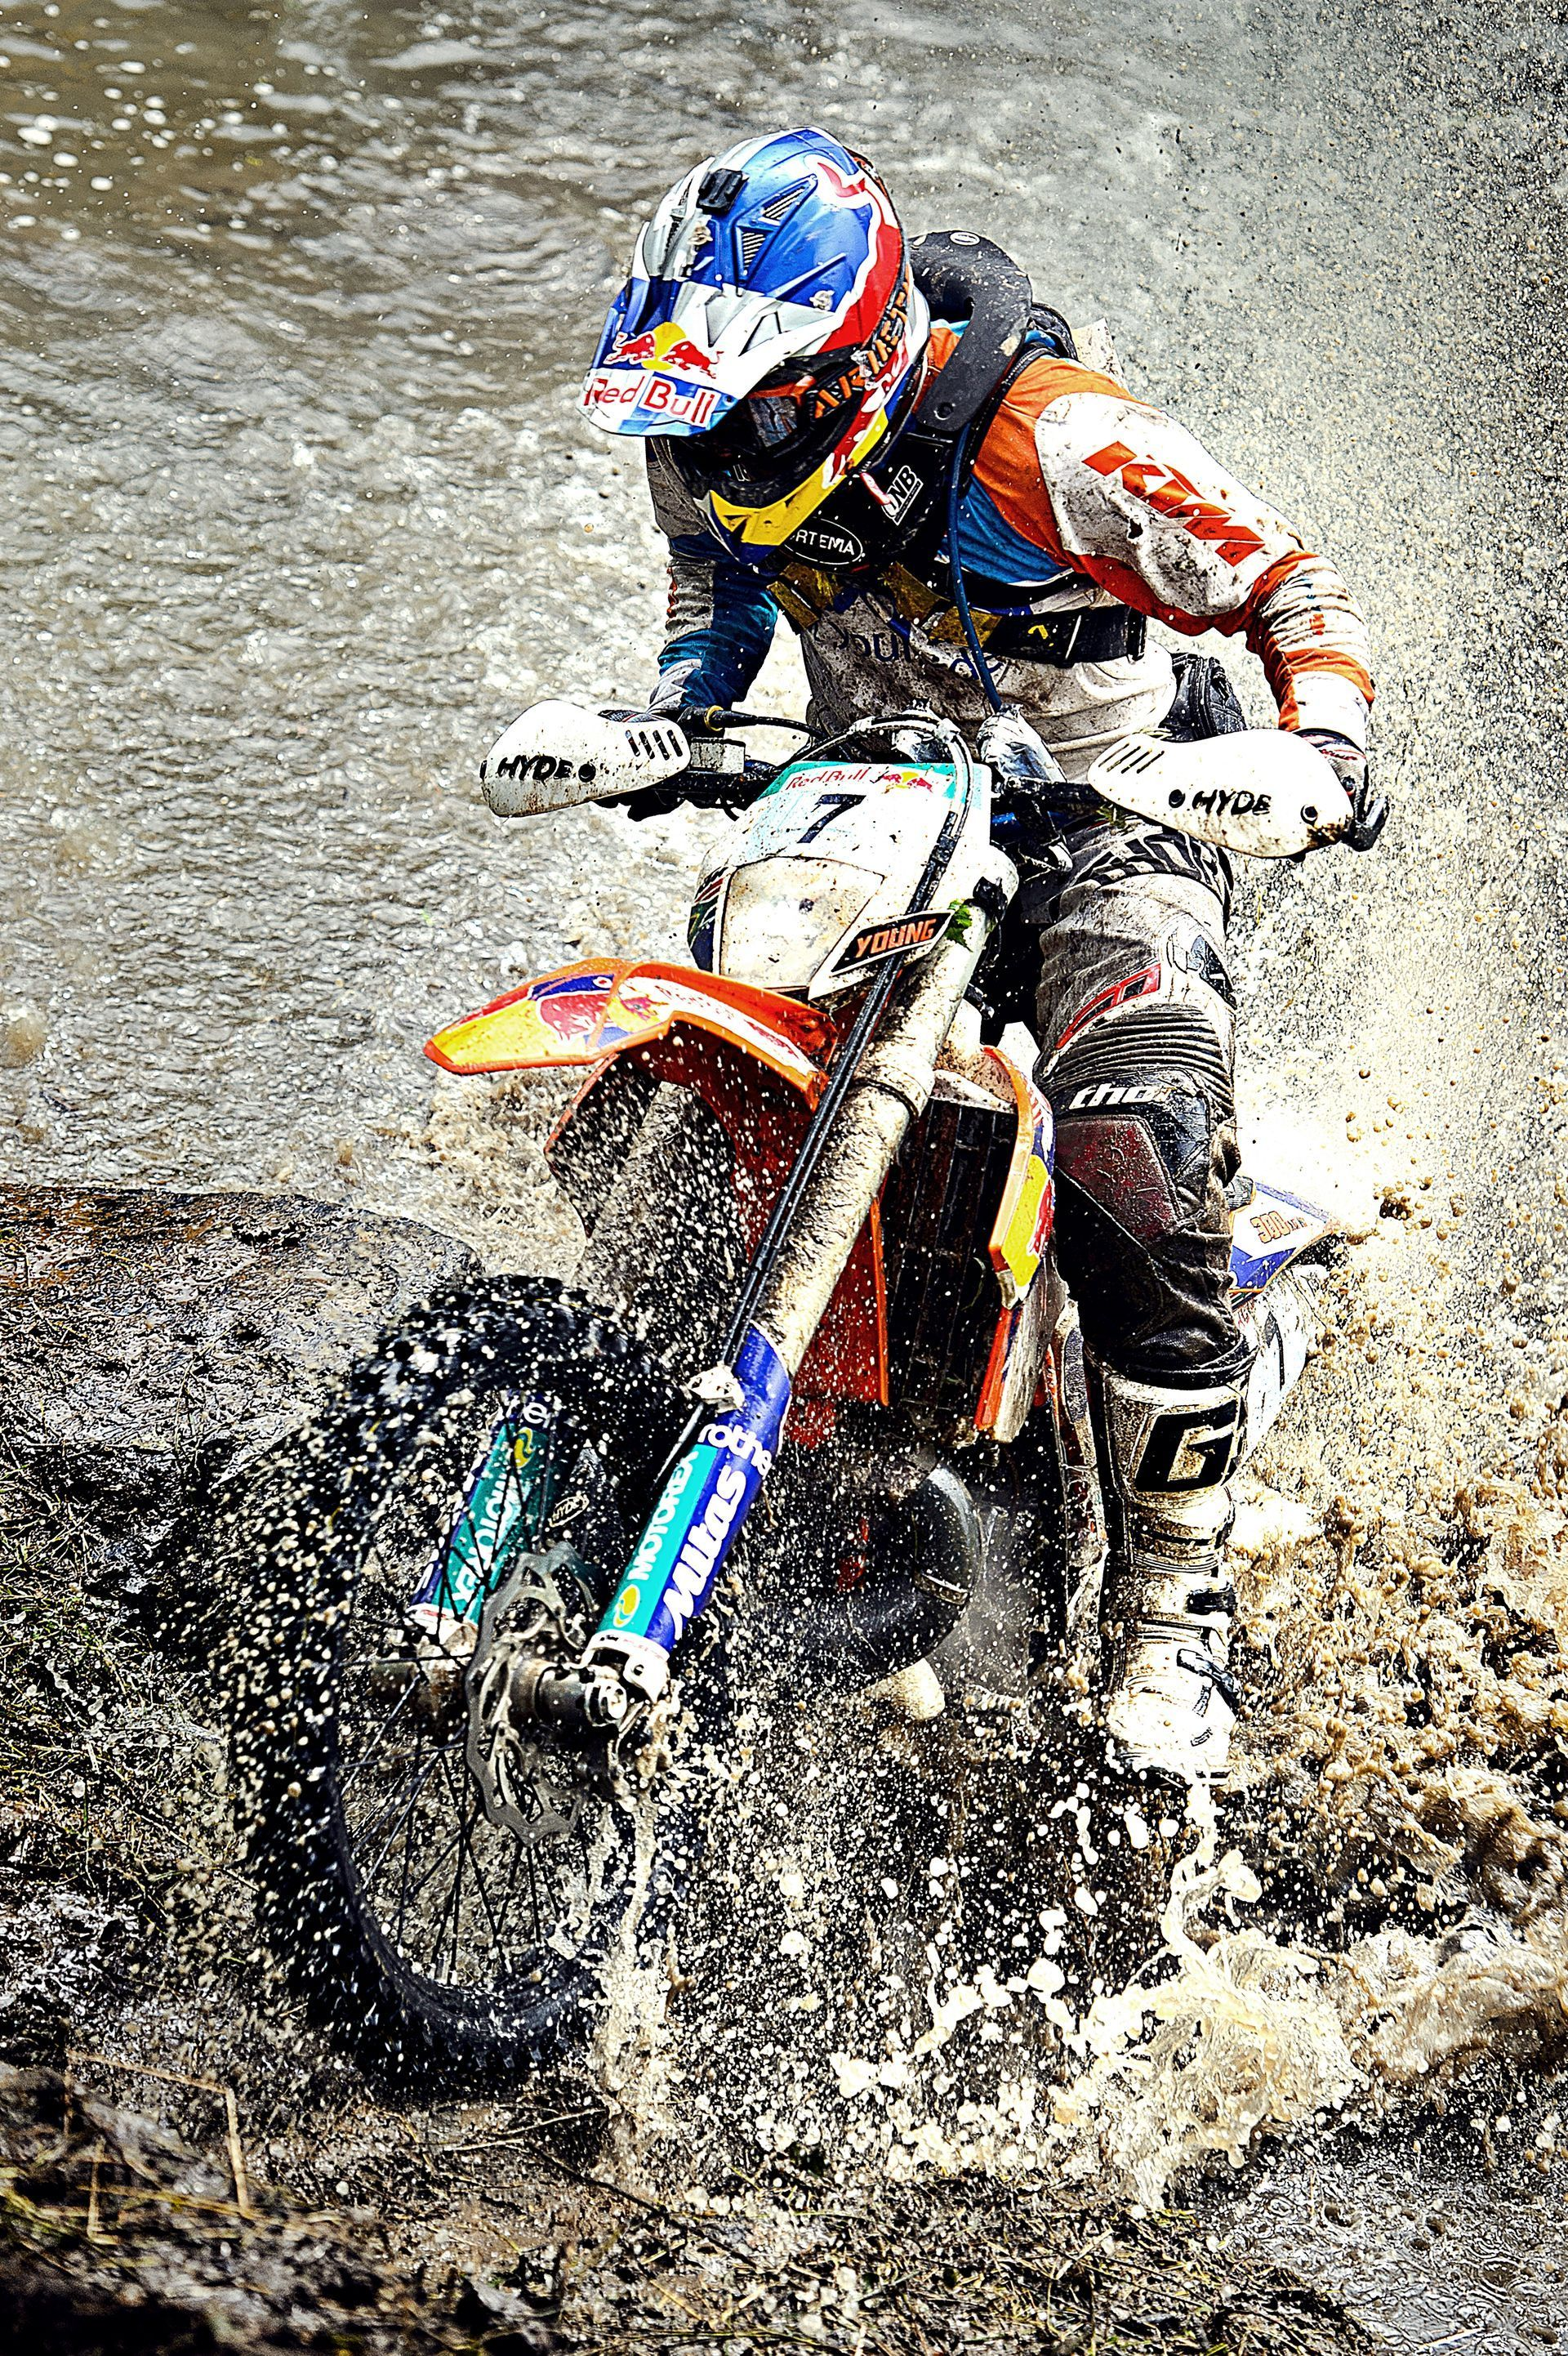 The Red Bull Romaniacs Is The Hardest Extreme Enduro Rally On This